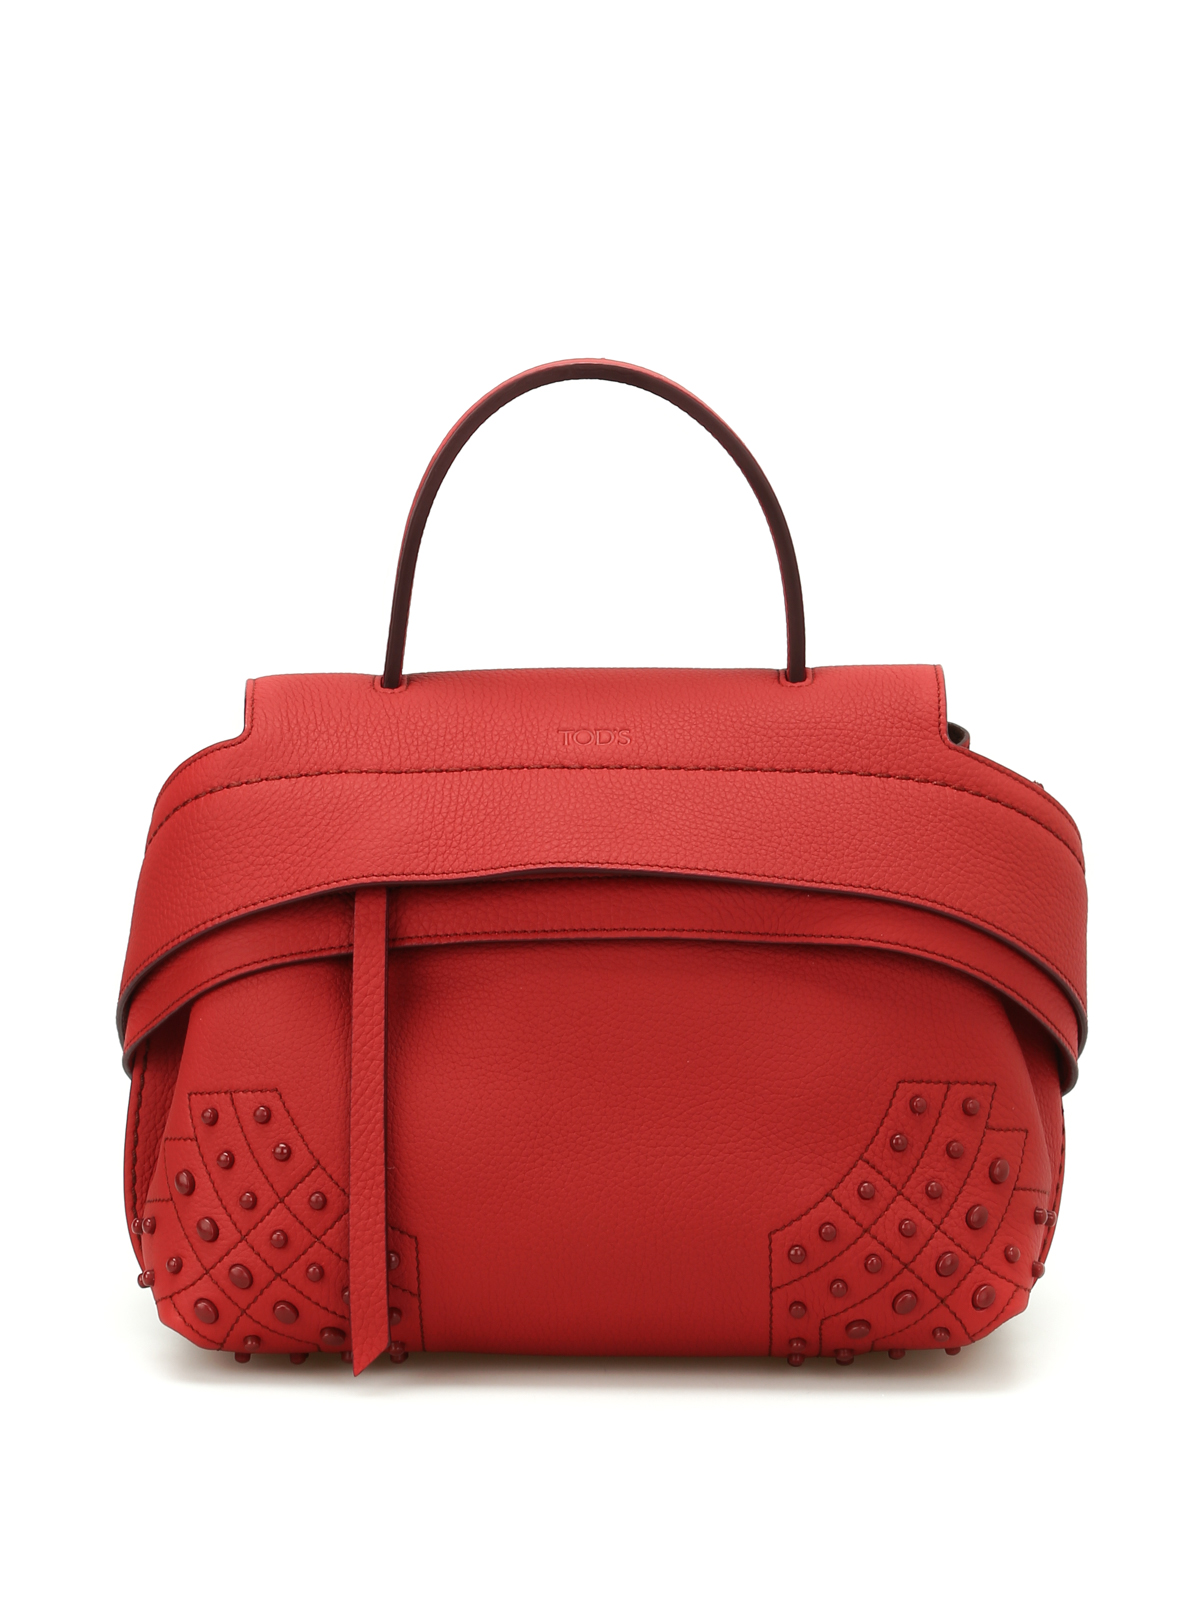 Free shipping on shoulder bags women at wilmergolding6jn1.gq Shop the latest shoulder-bag styles from the best brands. Totally free shipping & returns.